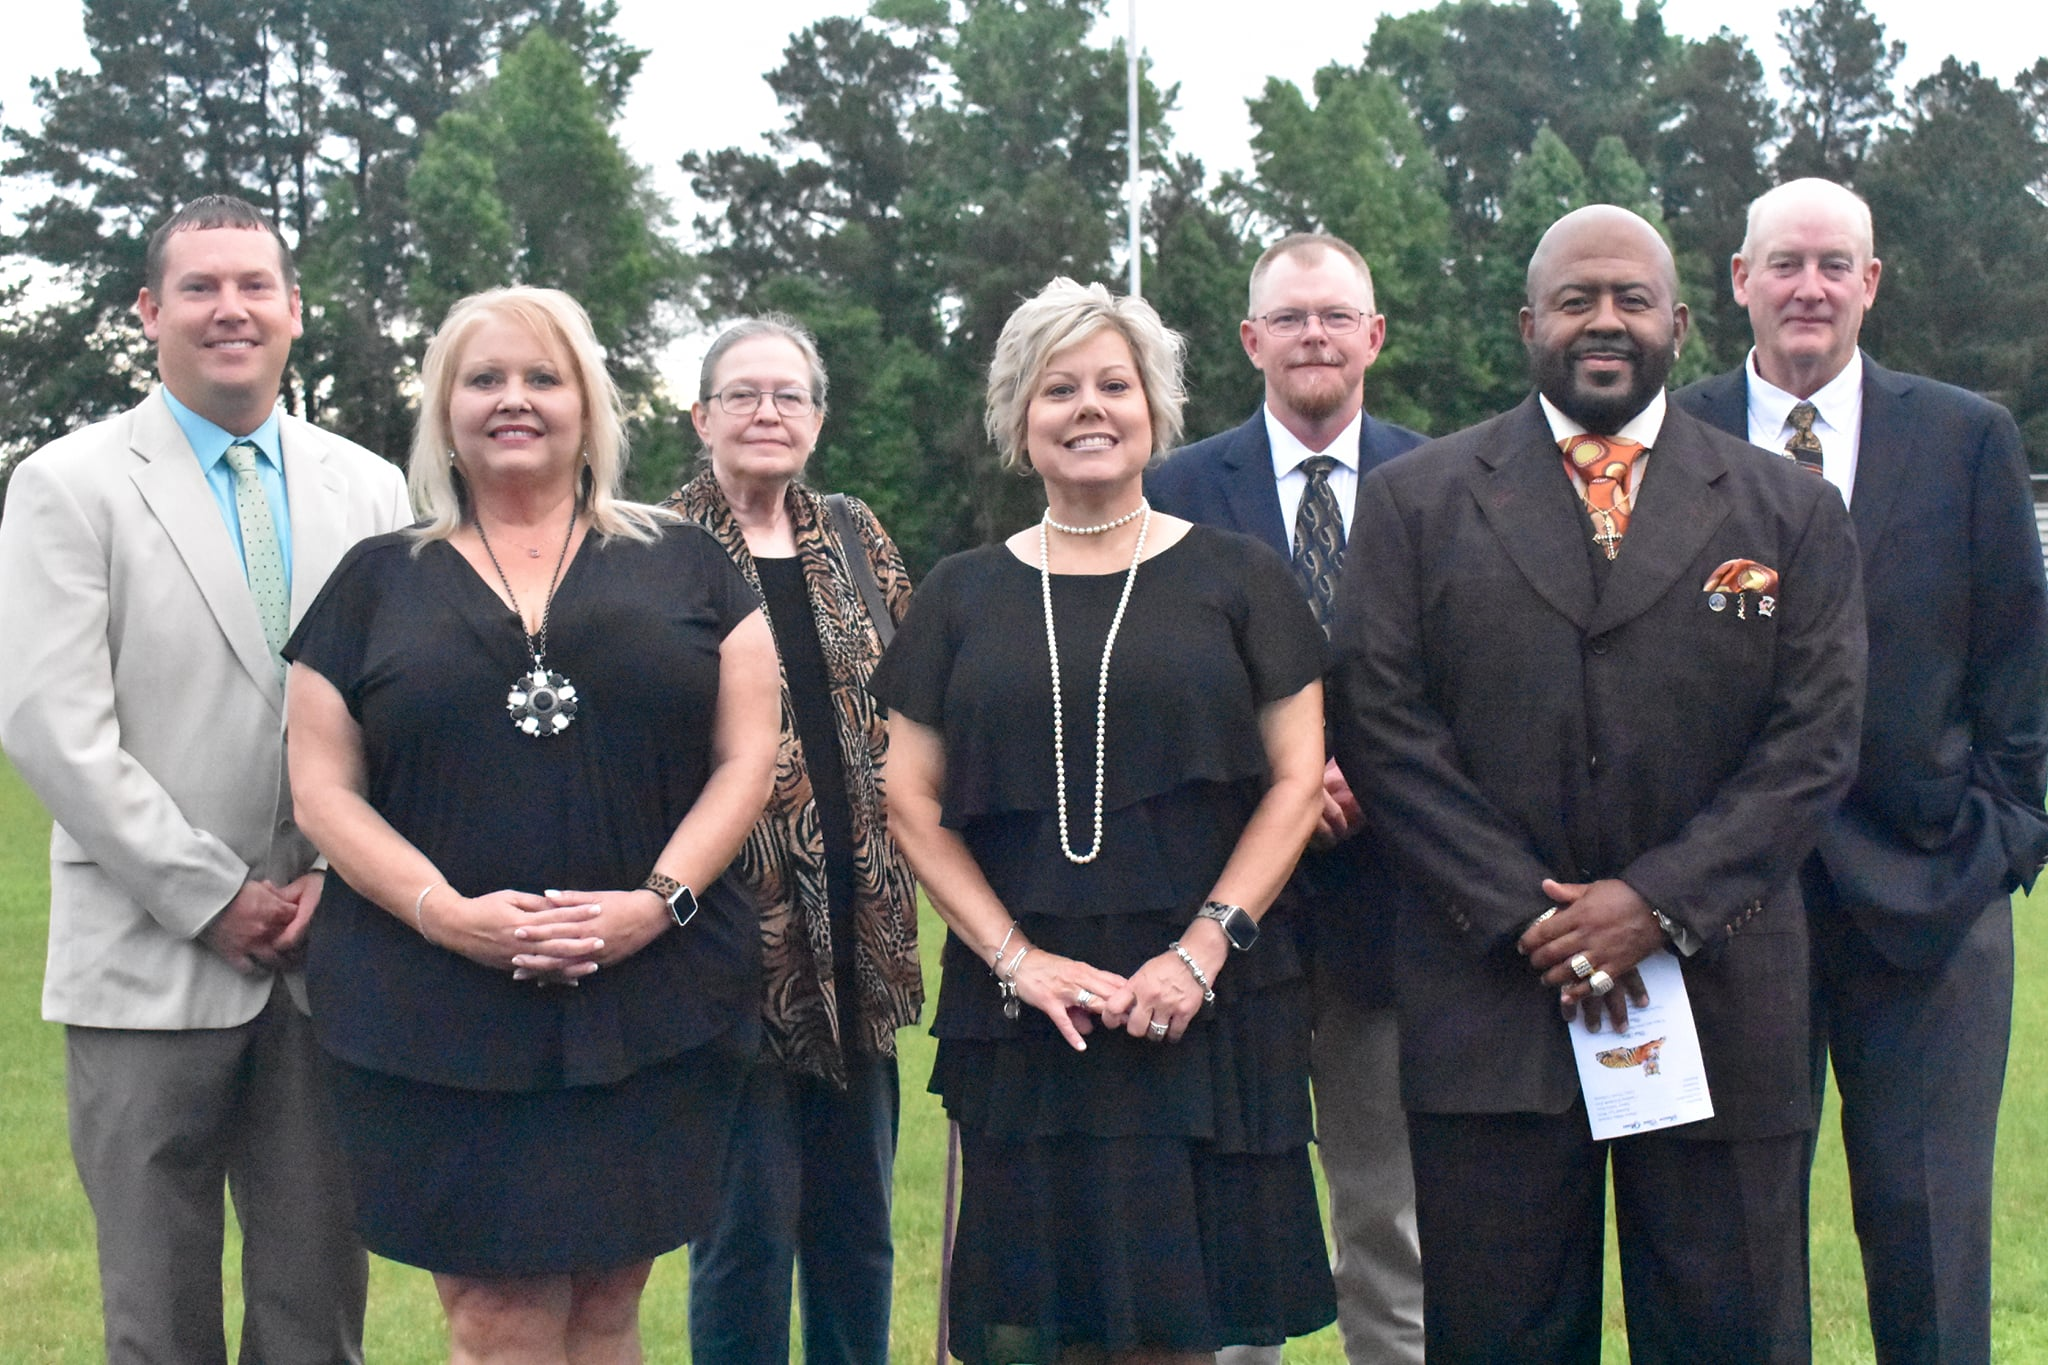 2020-2021 Board Members pose for picture at graduation